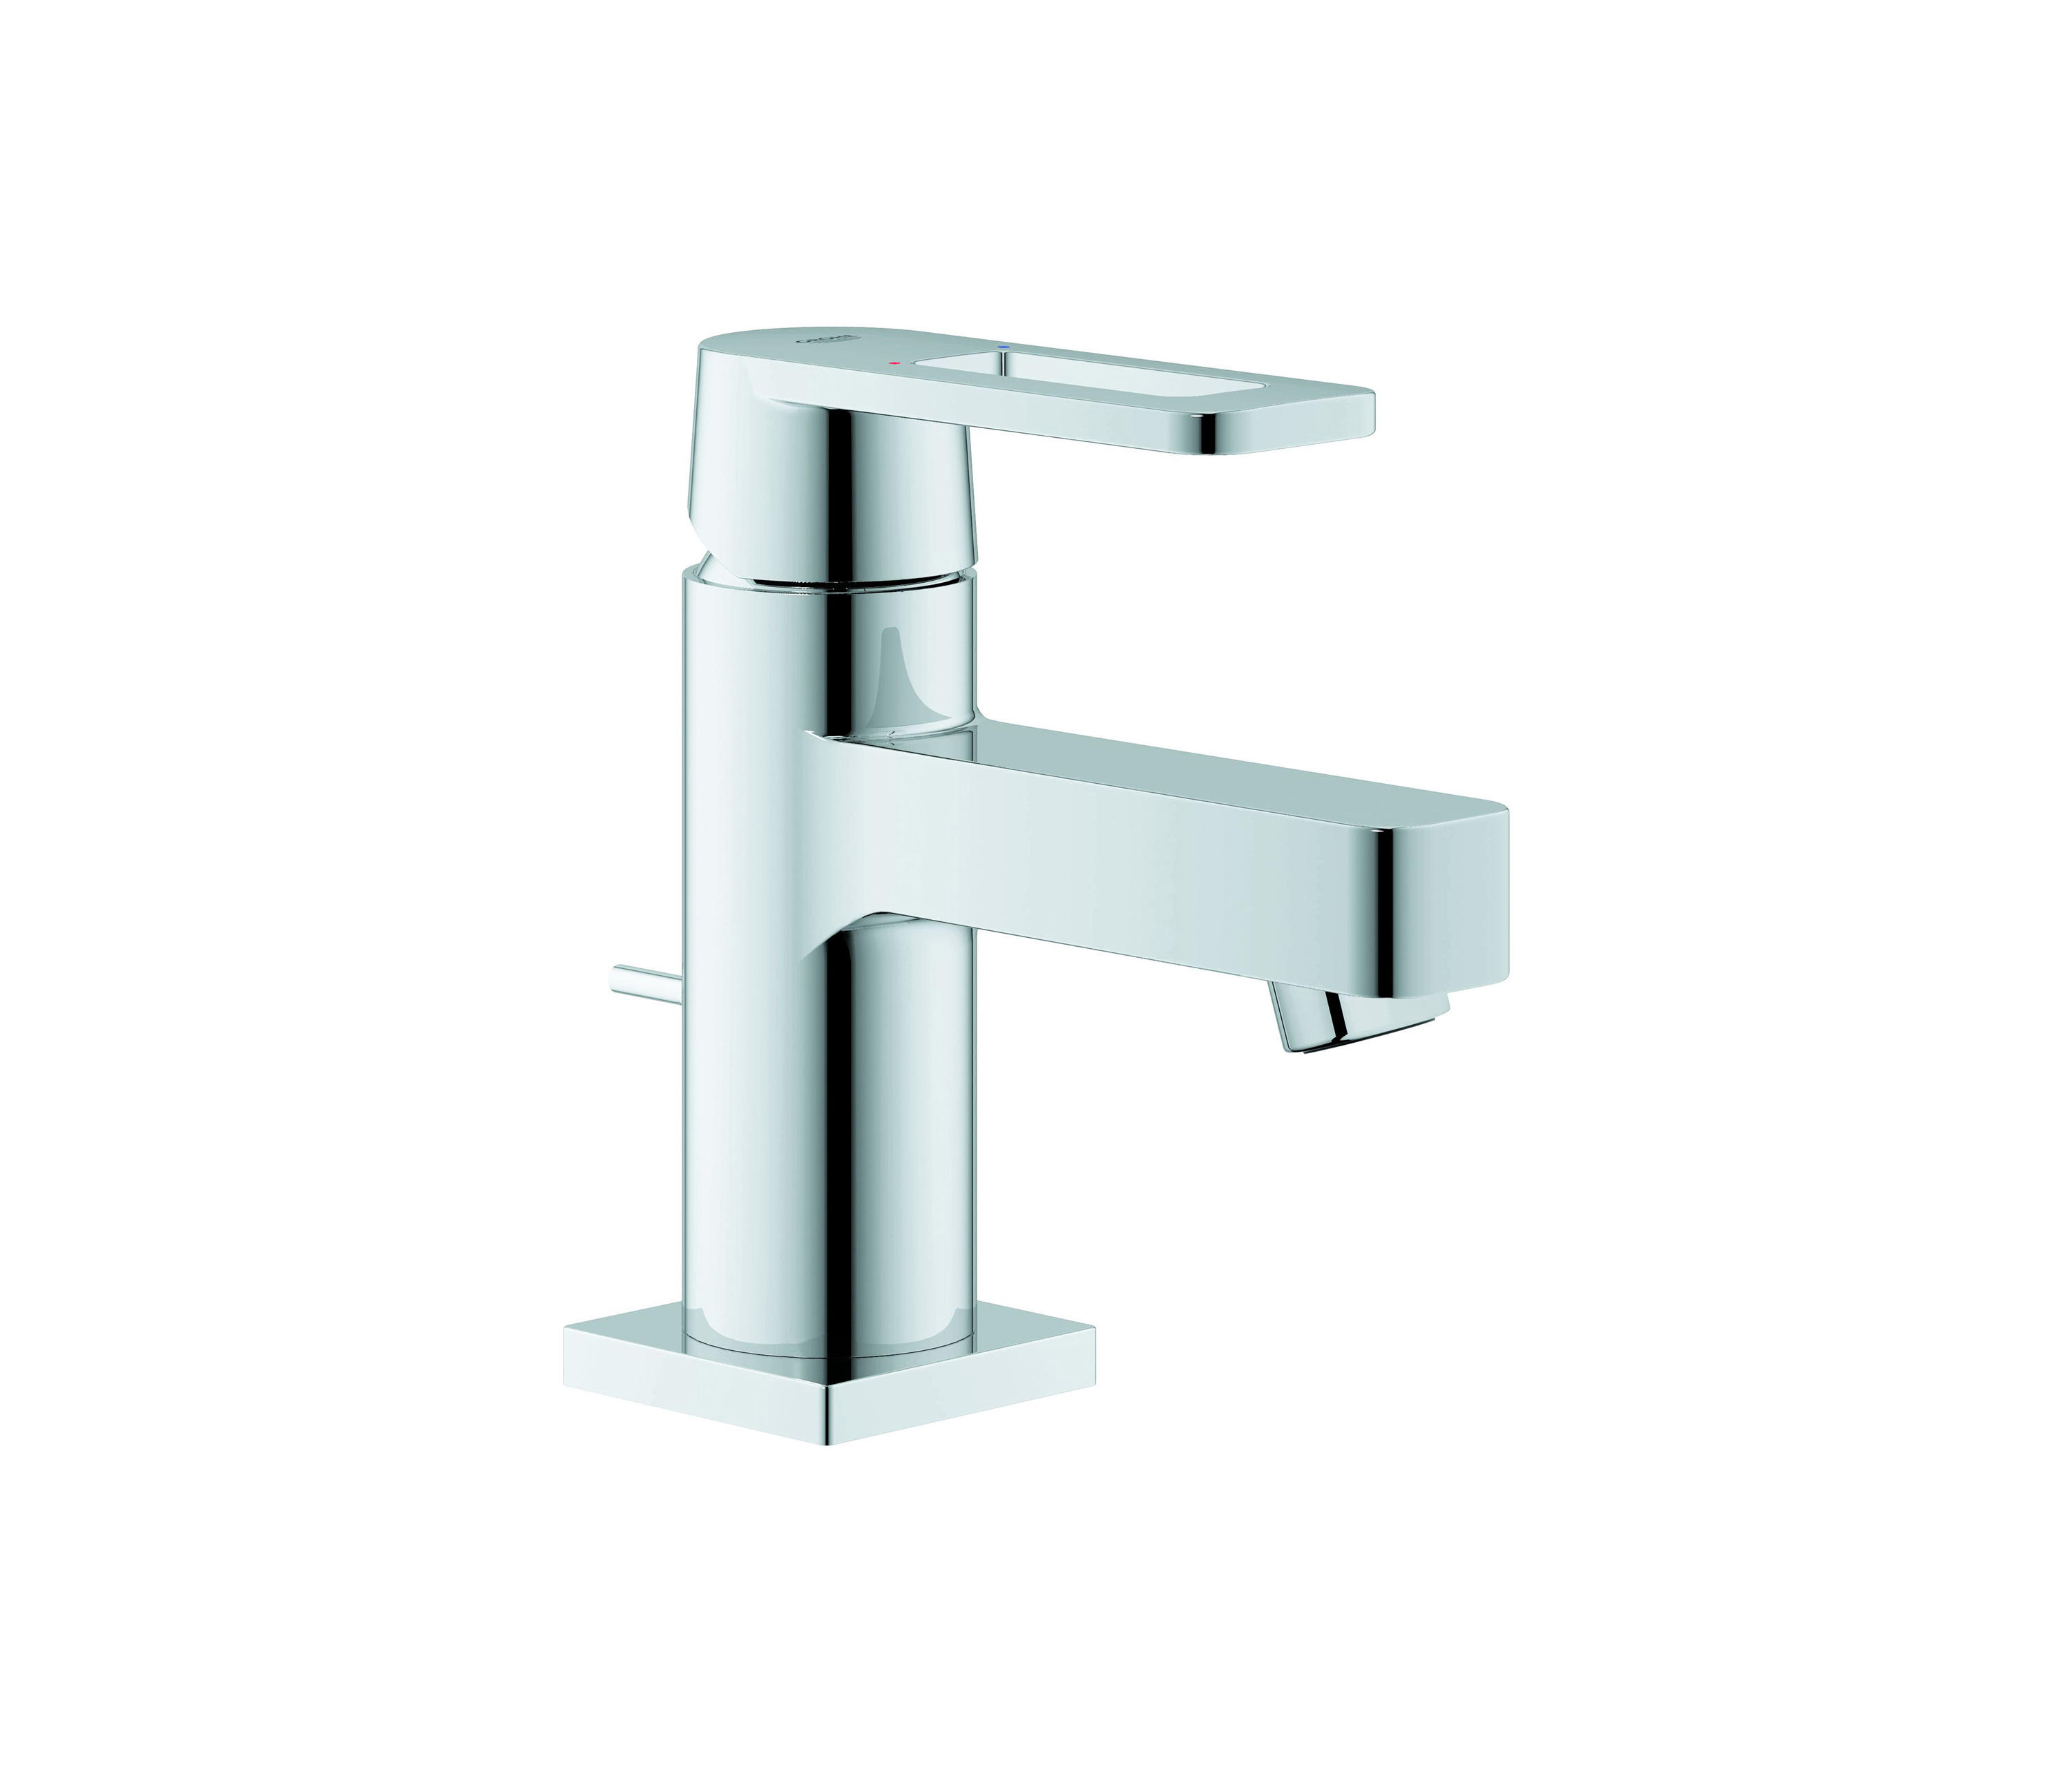 quadra single lever basin mixer 1 2 xs size wash basin taps from grohe architonic. Black Bedroom Furniture Sets. Home Design Ideas